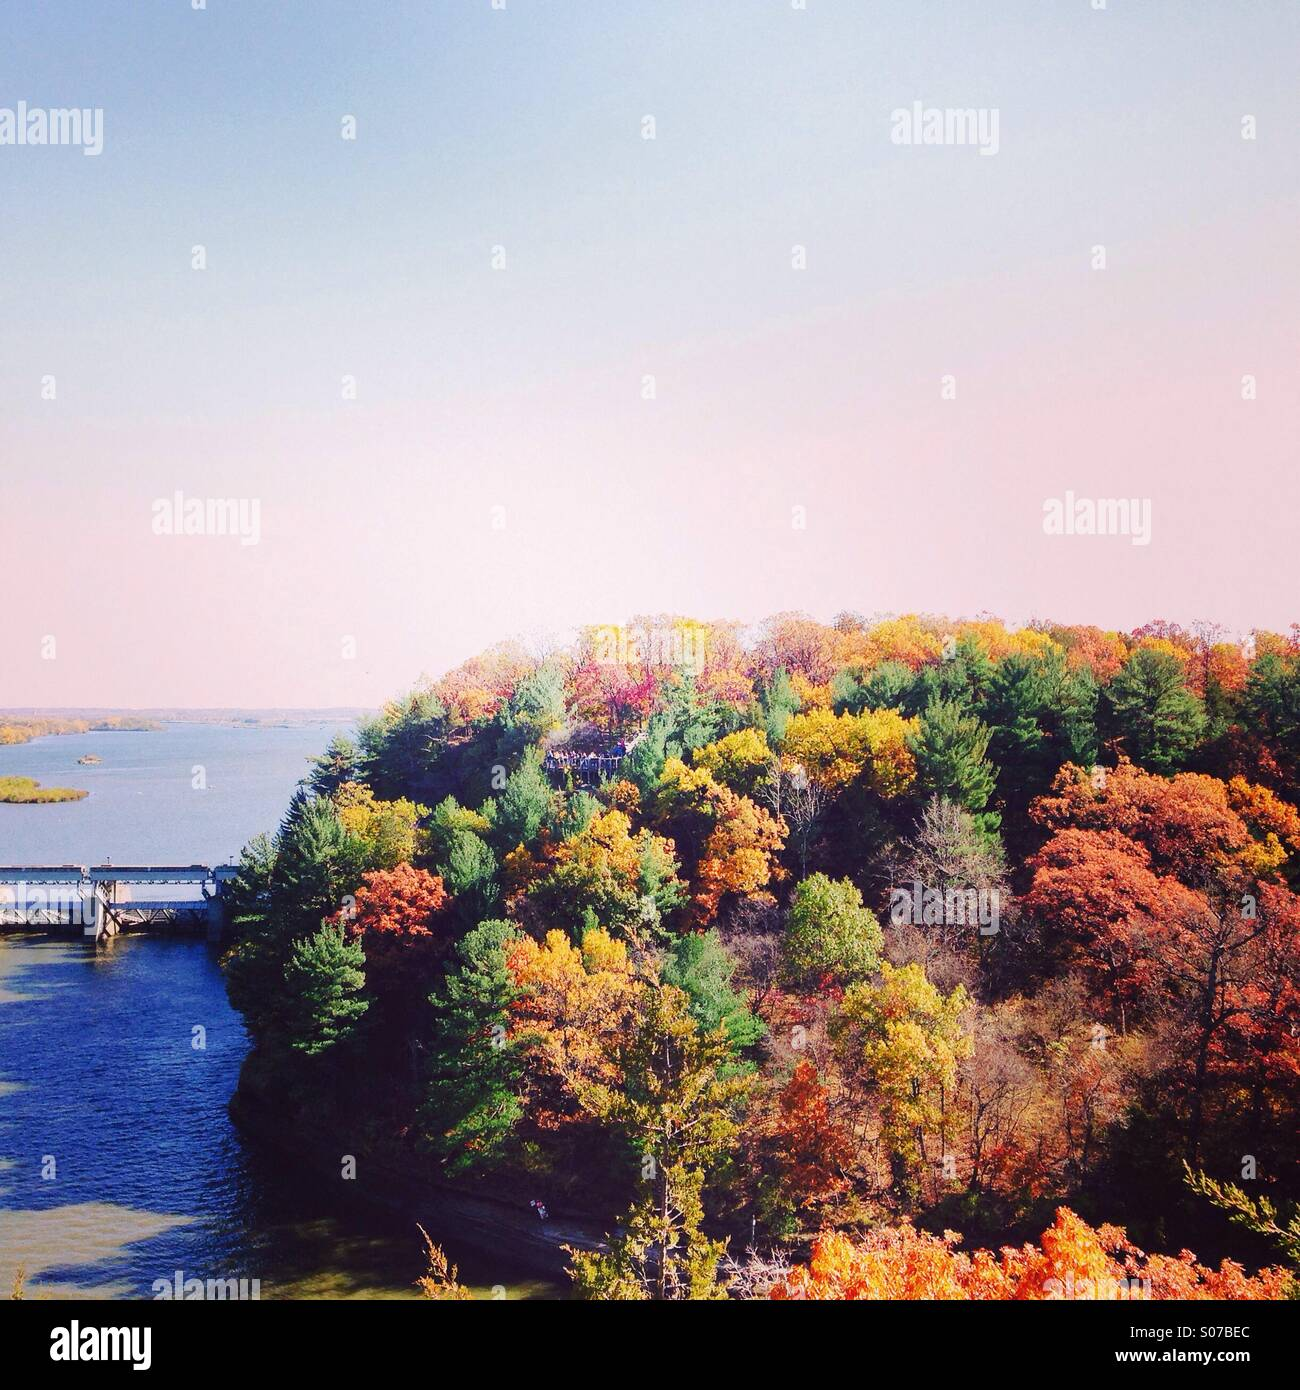 Starved Rock state park - Stock Image